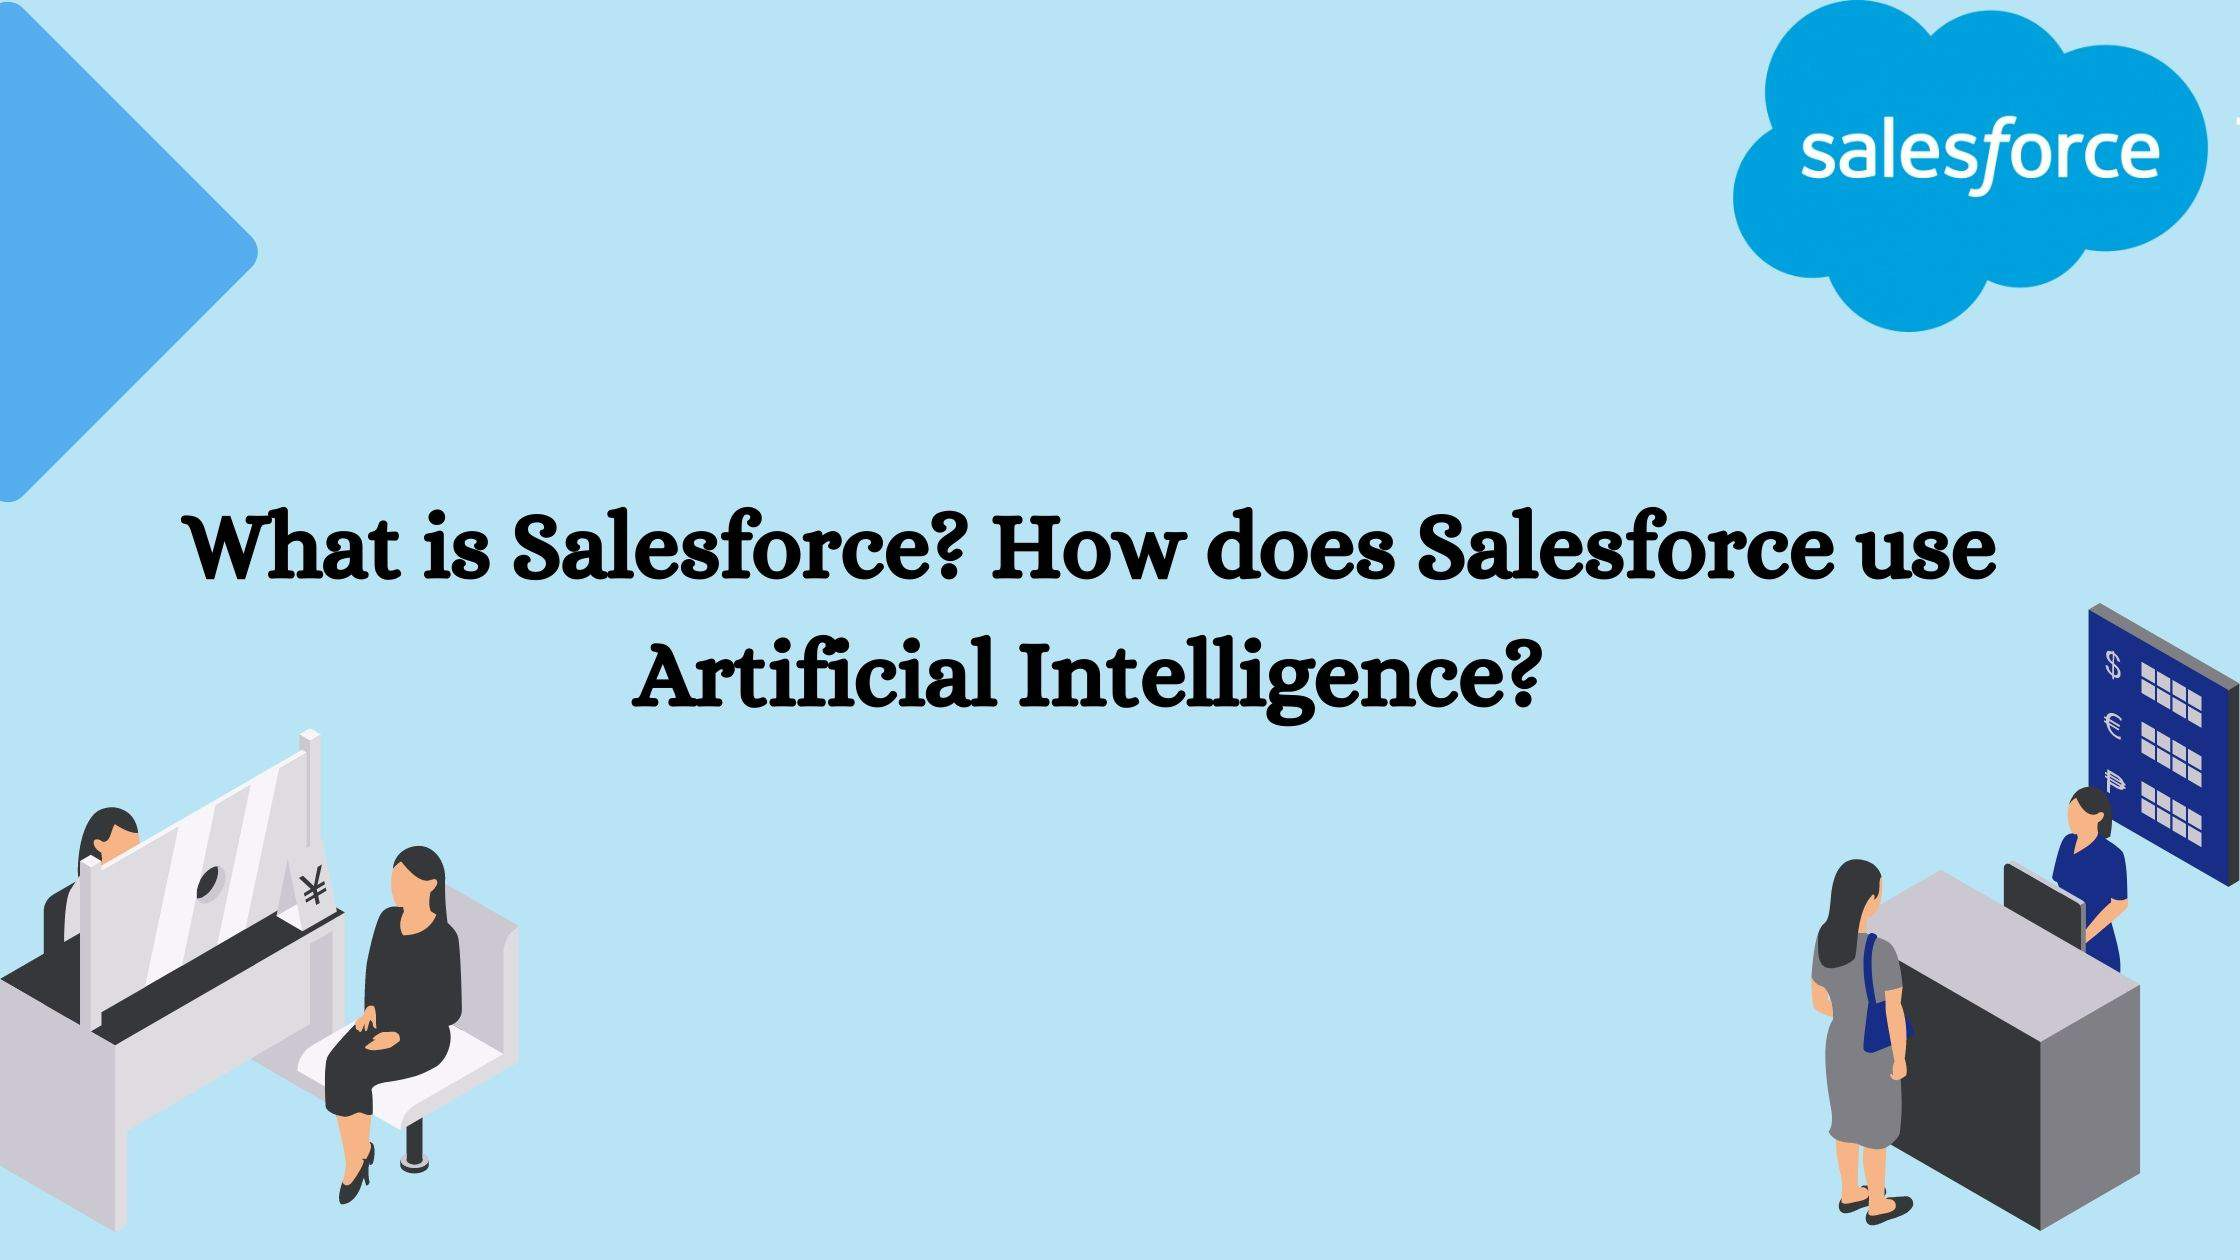 How does Salesforce Use Artificial Intelligence? title banner